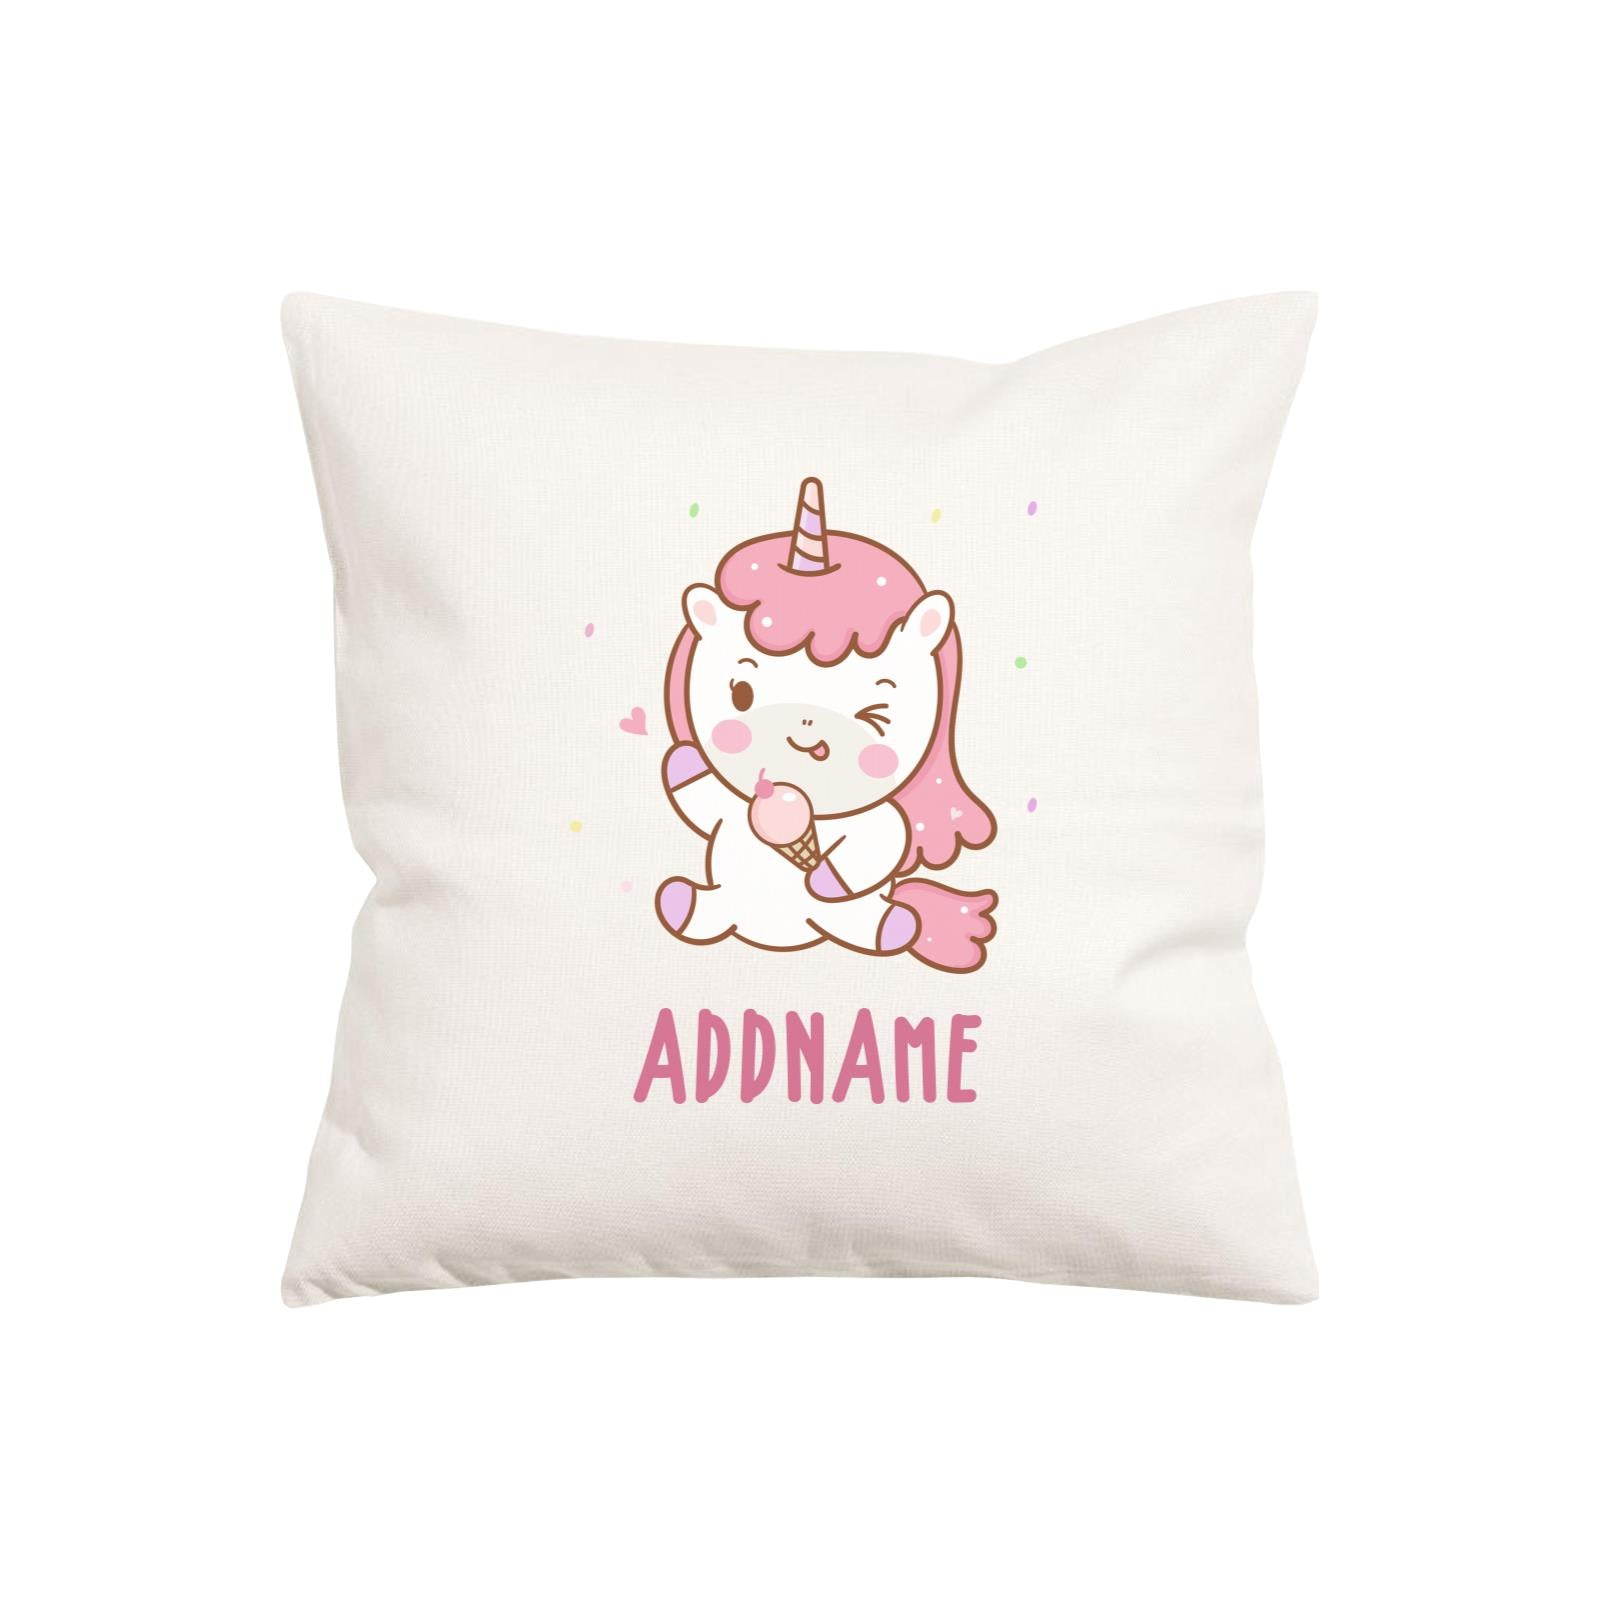 Unicorn And Princess Series Unicorn Happy Eating Ice Cream Addname Pillow Cushion